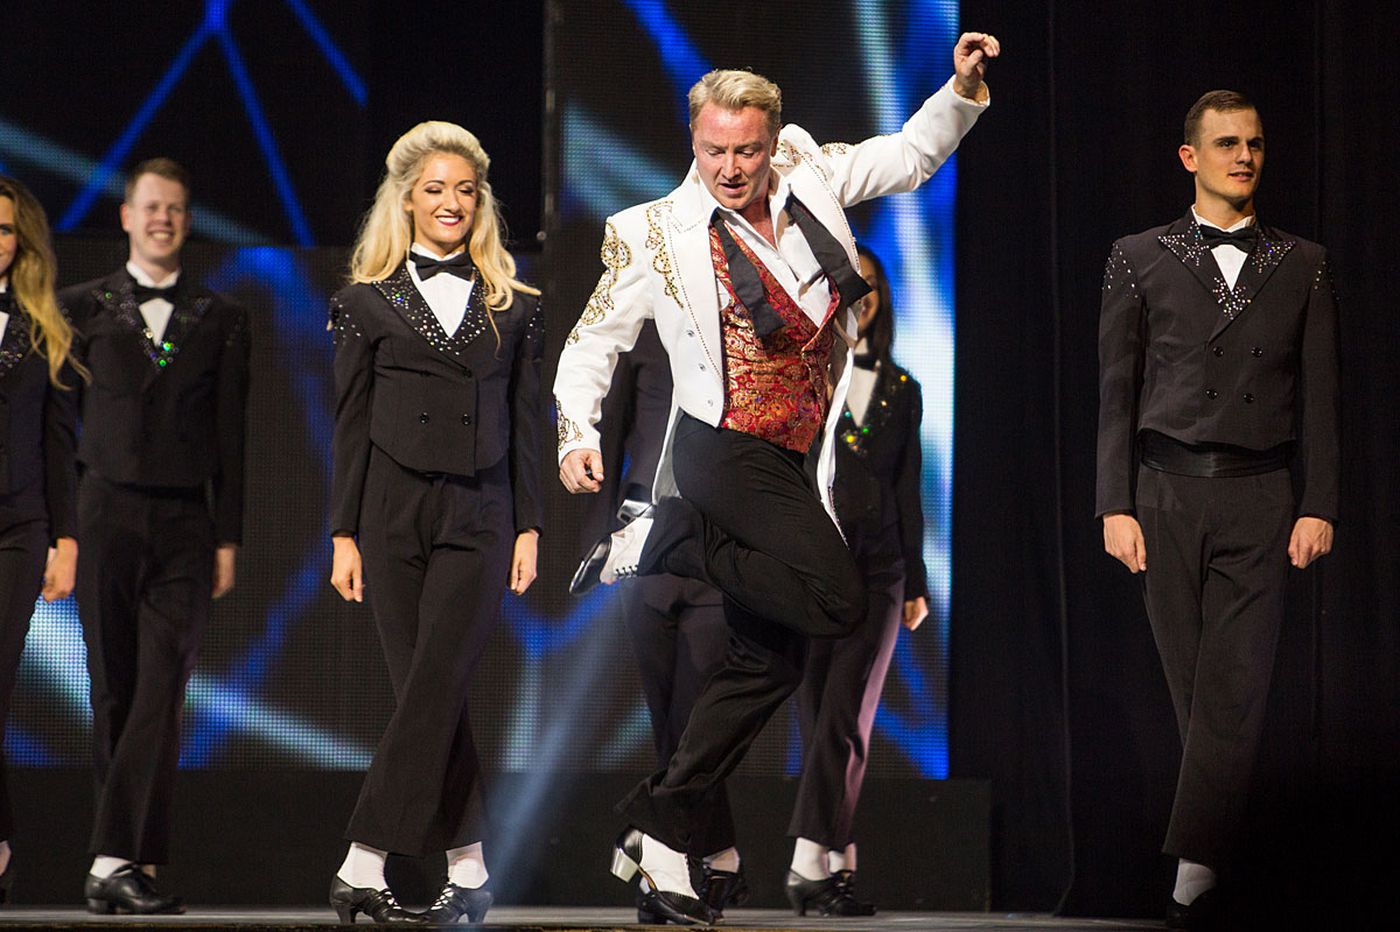 Lord of the Dance's Michael Flatley on why he's excited to retire